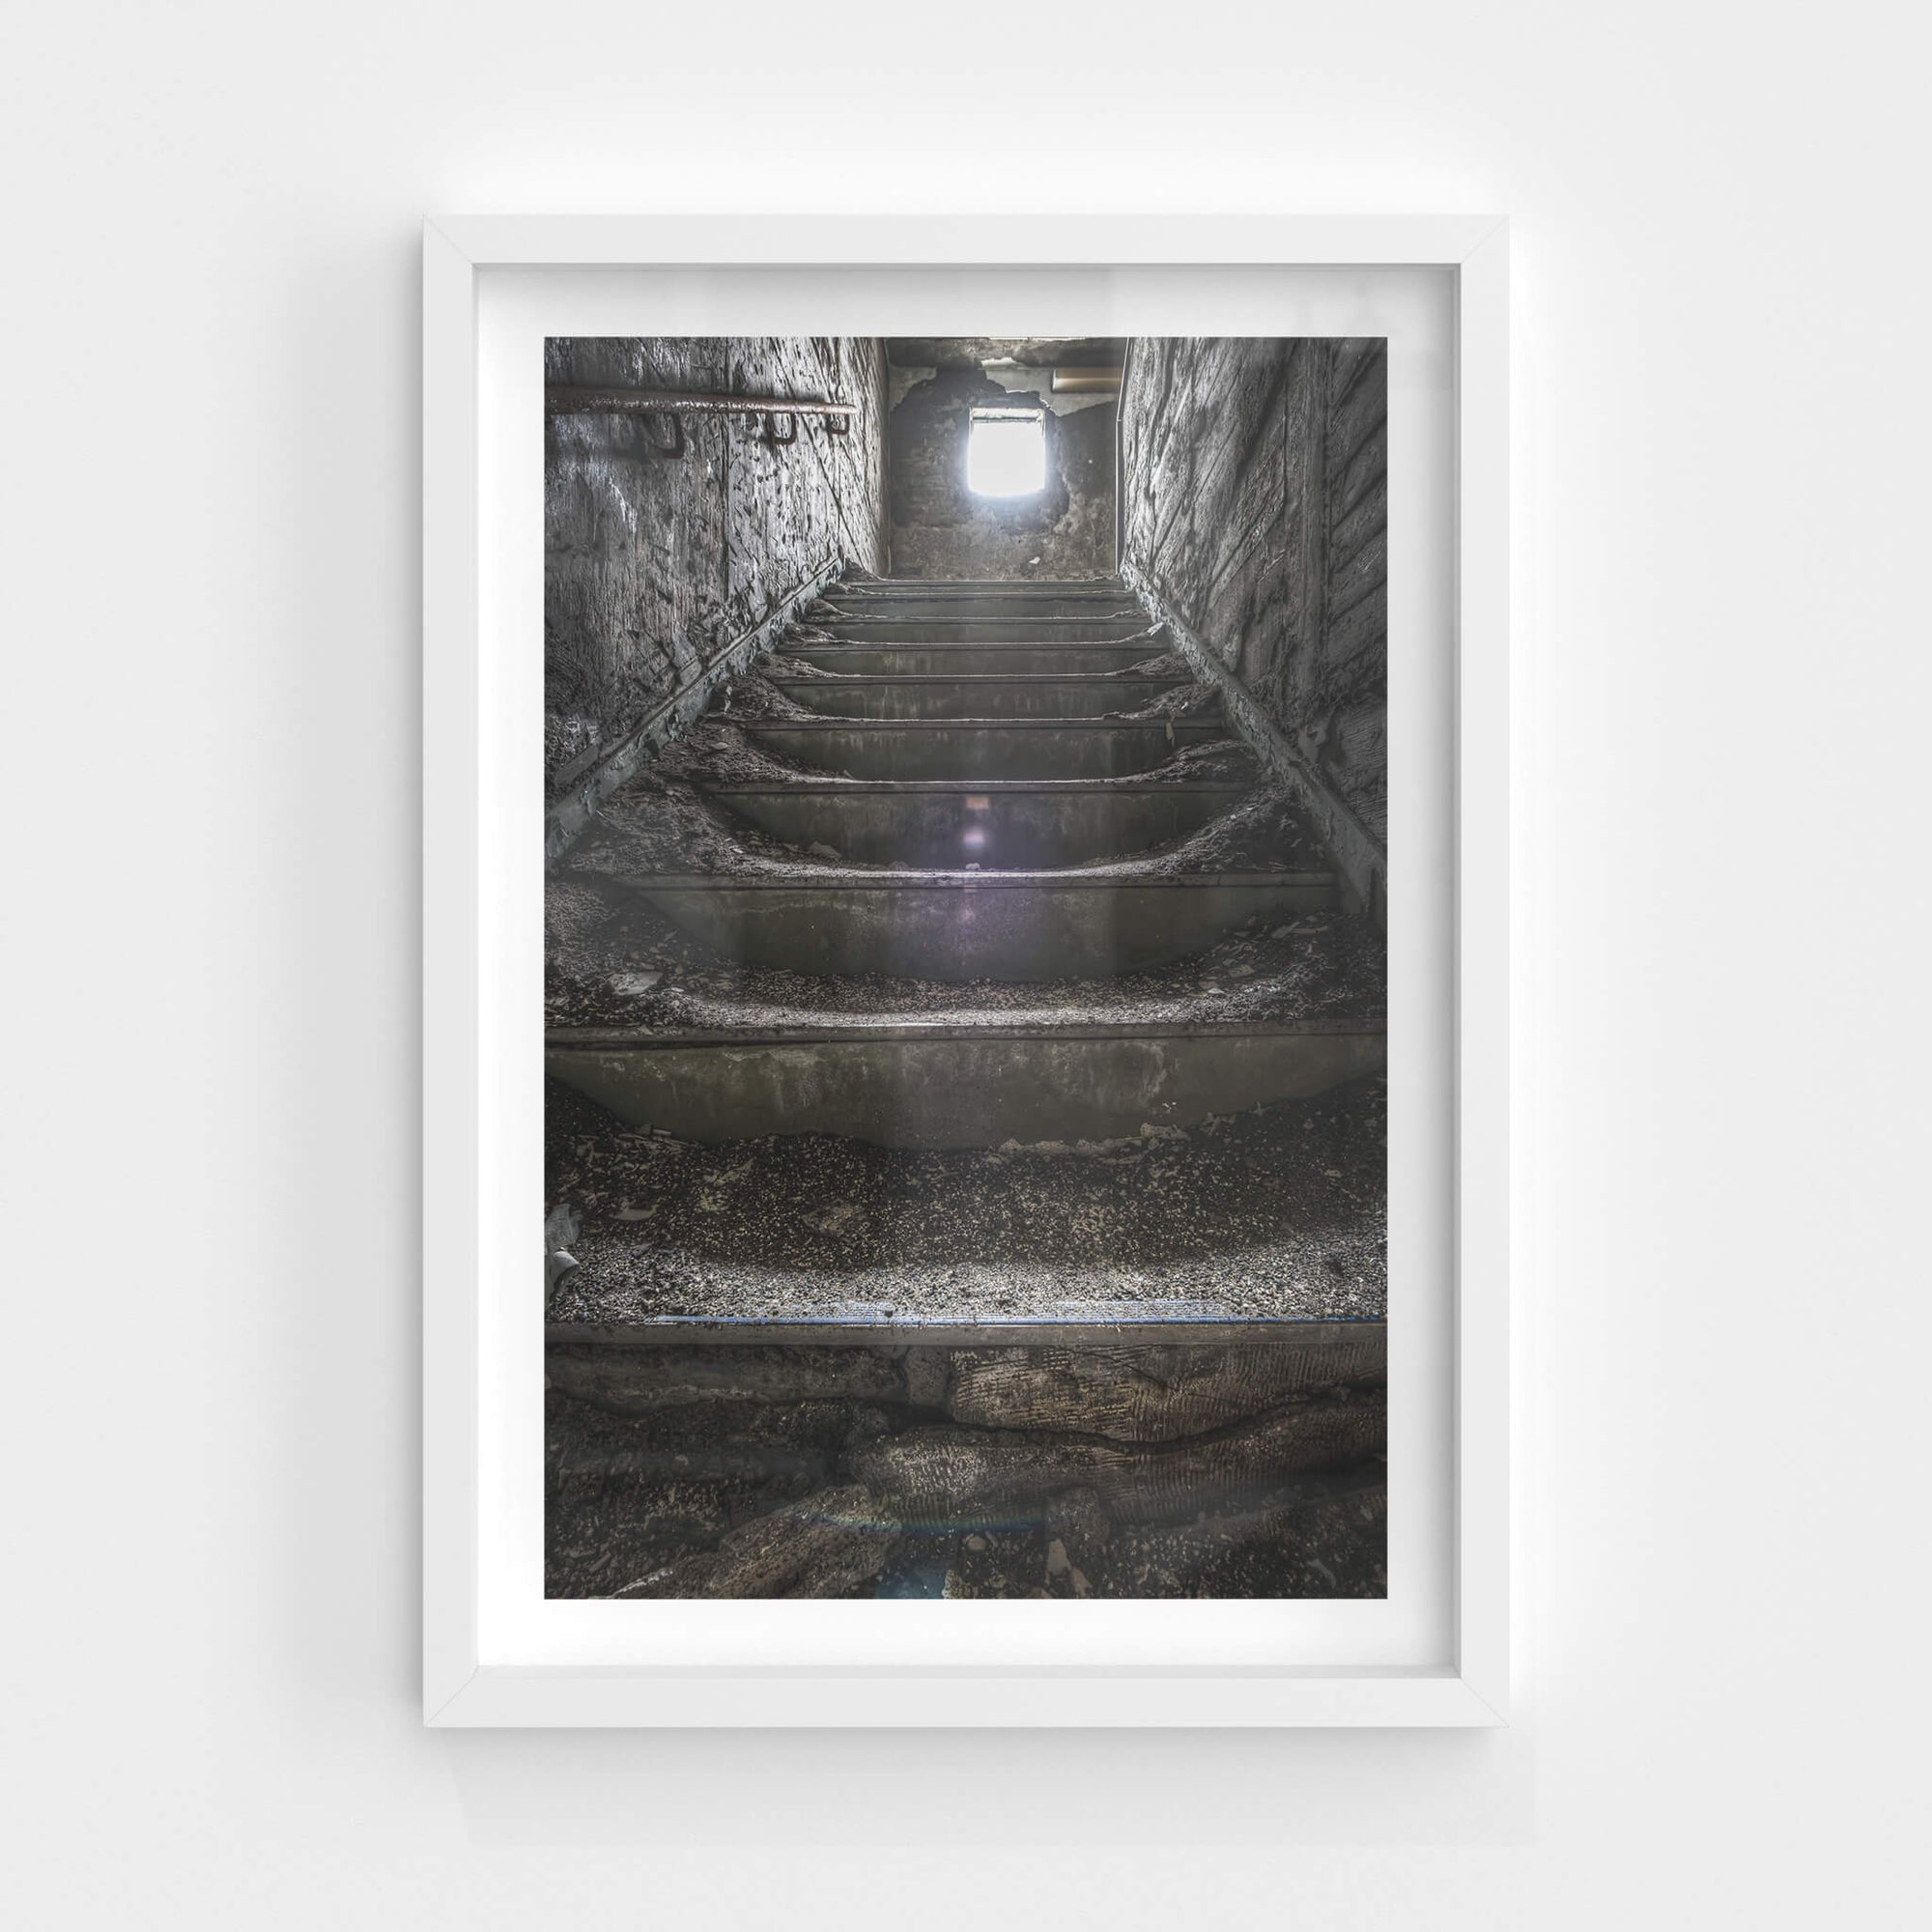 Staircase | Kuwashima Hospital Fine Art Print - Lost Collective Shop